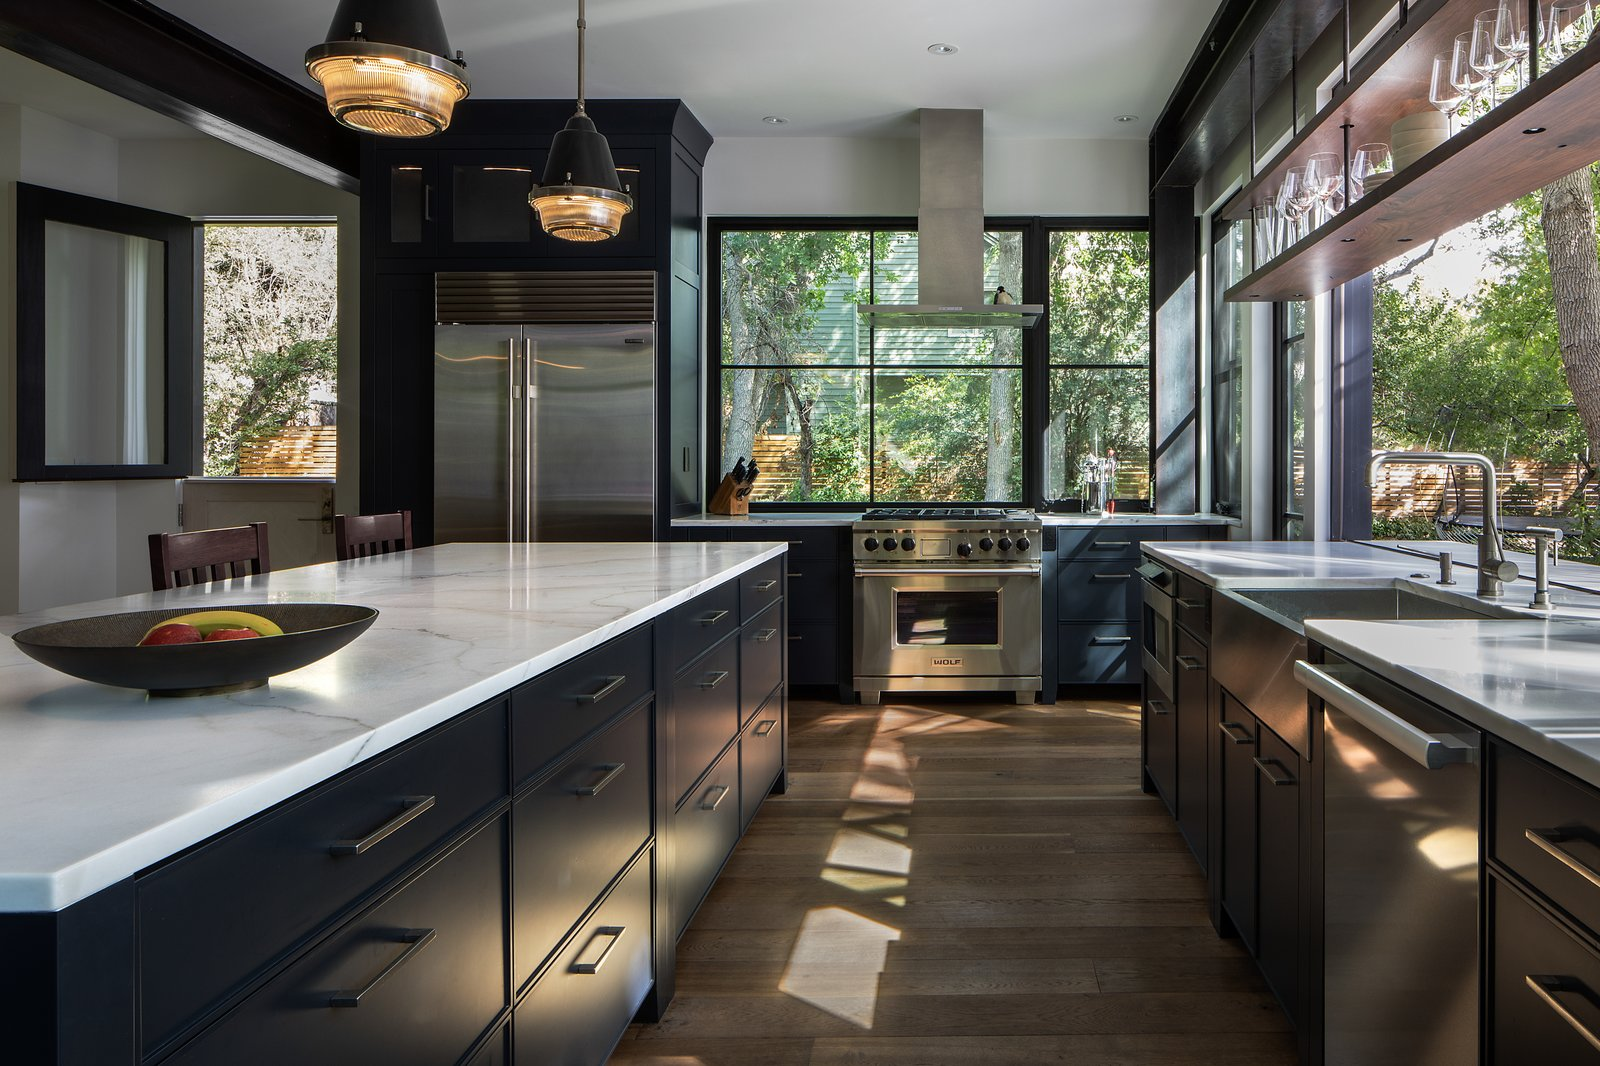 A closer peek at the kitchen. Here, you can see how the counter extends to the outdoor patio.